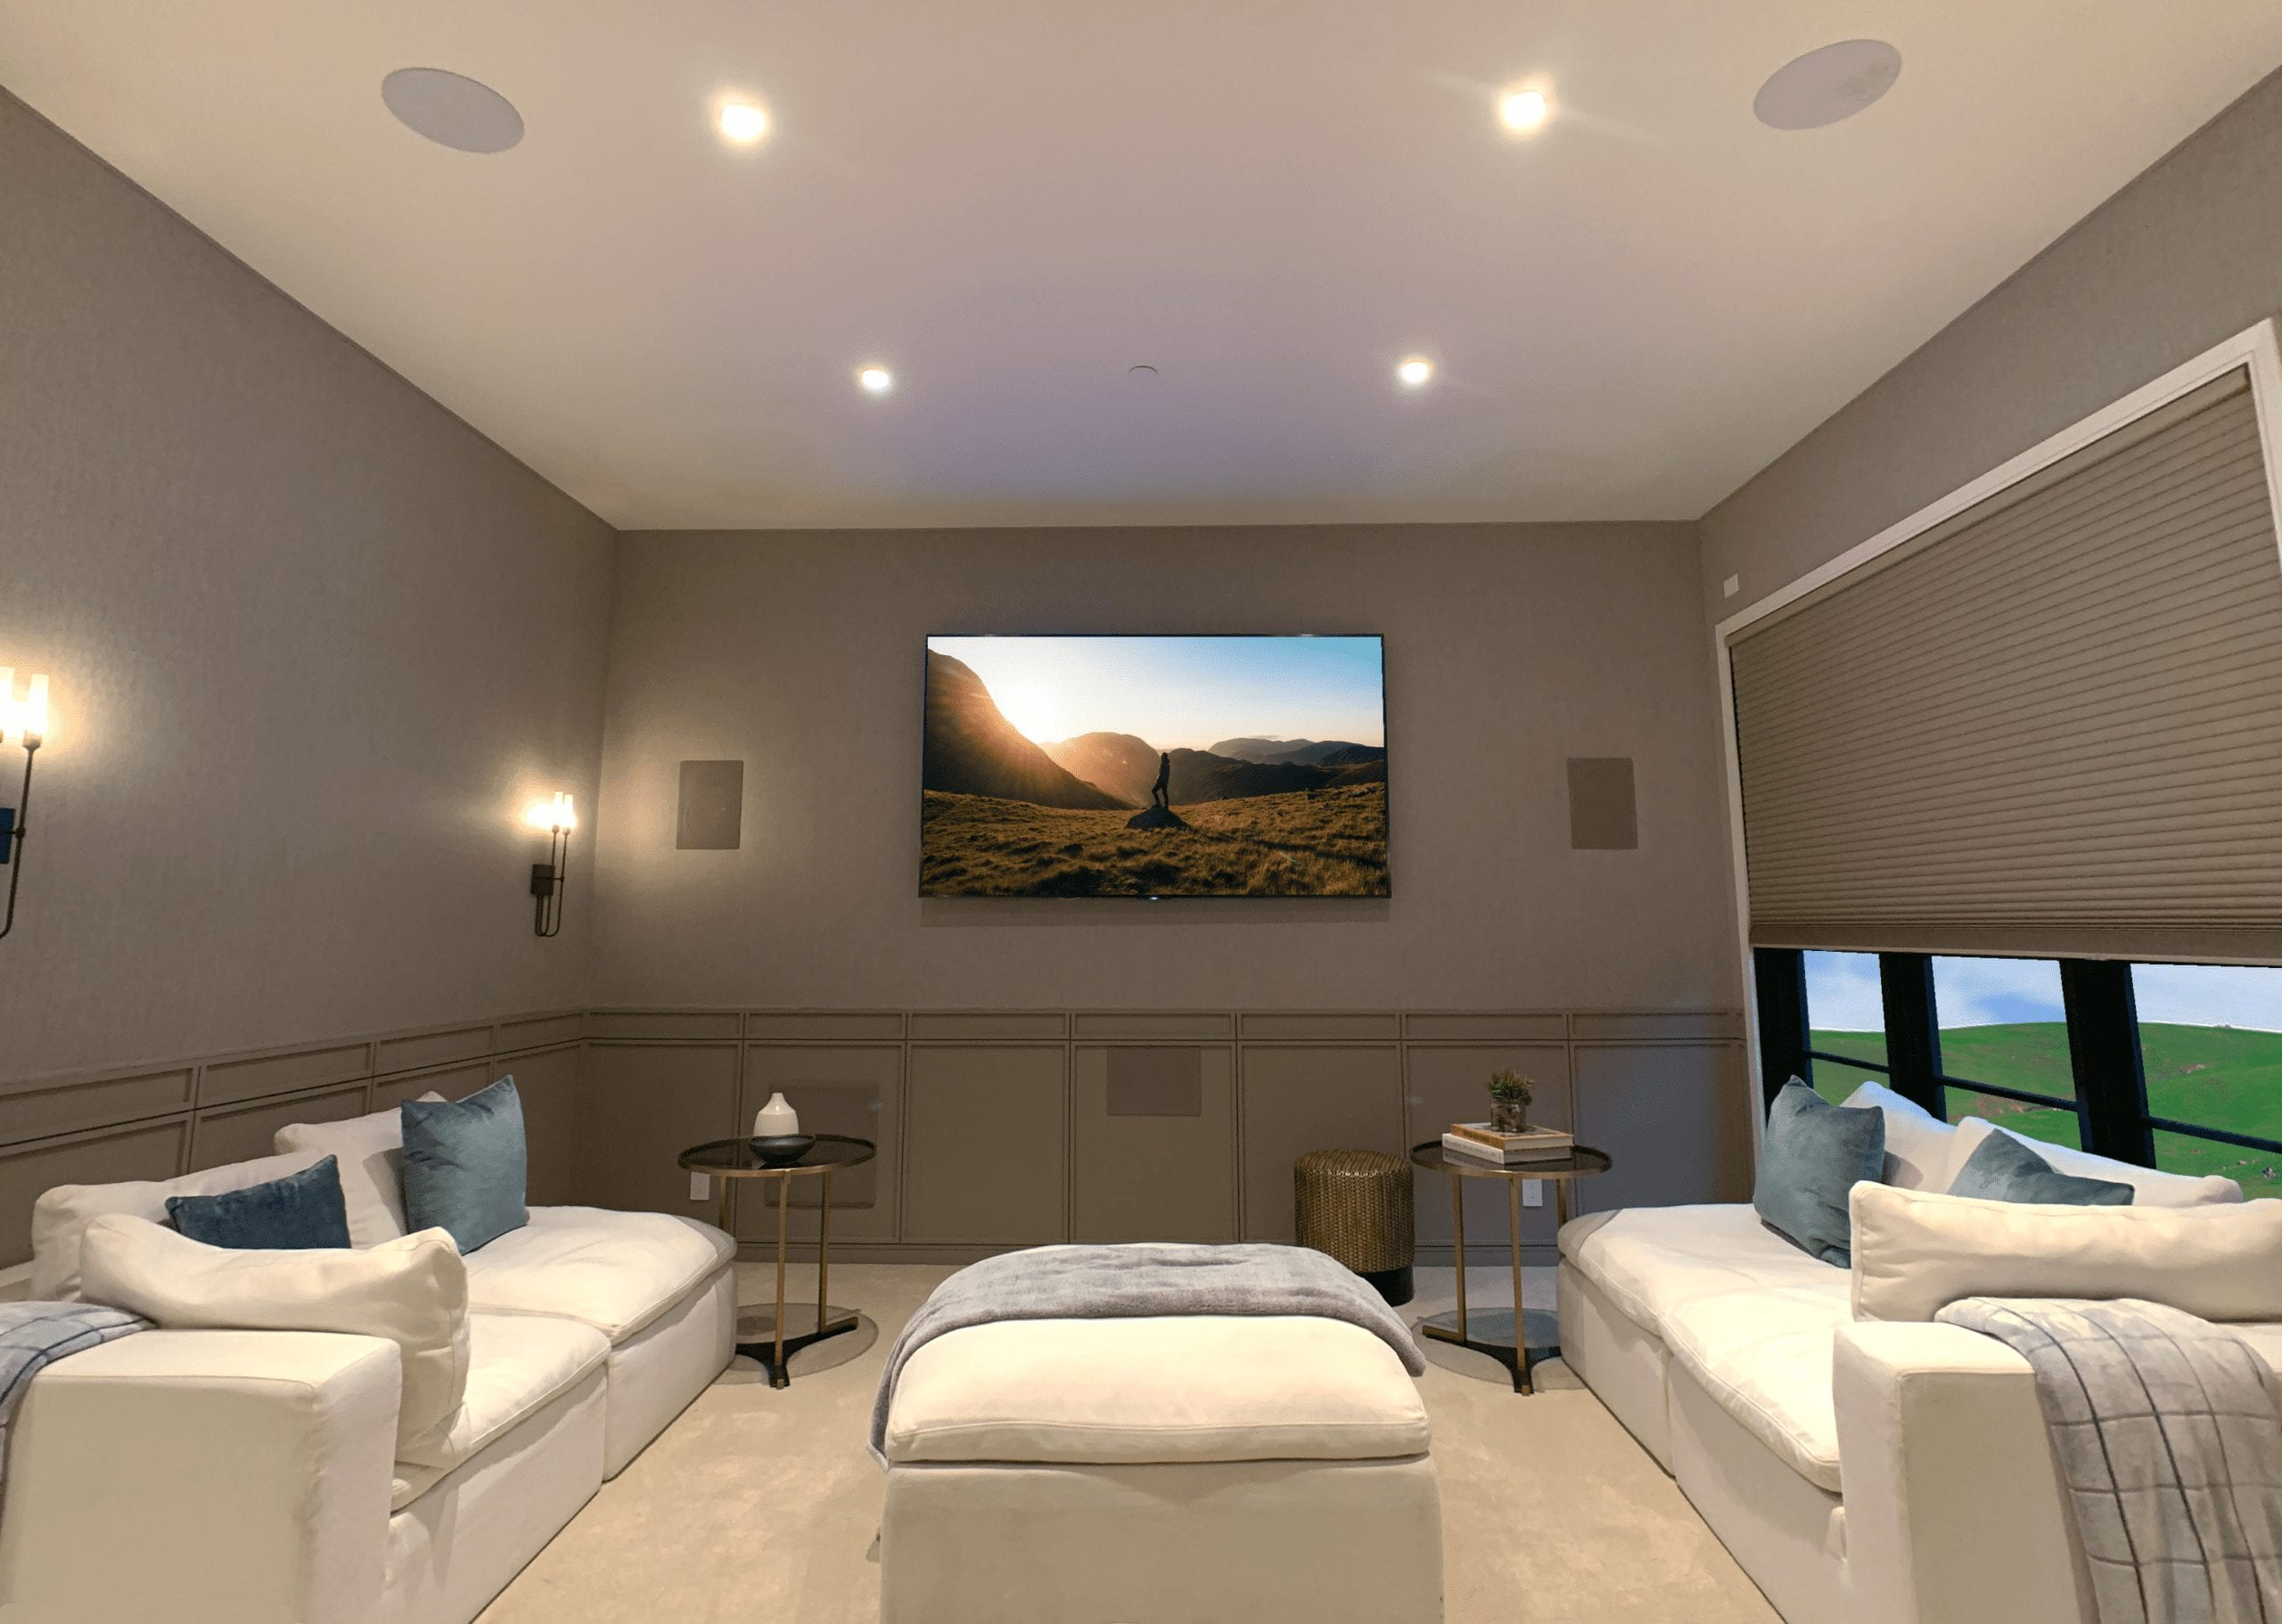 home theater room with sony tv and dolby surround sound